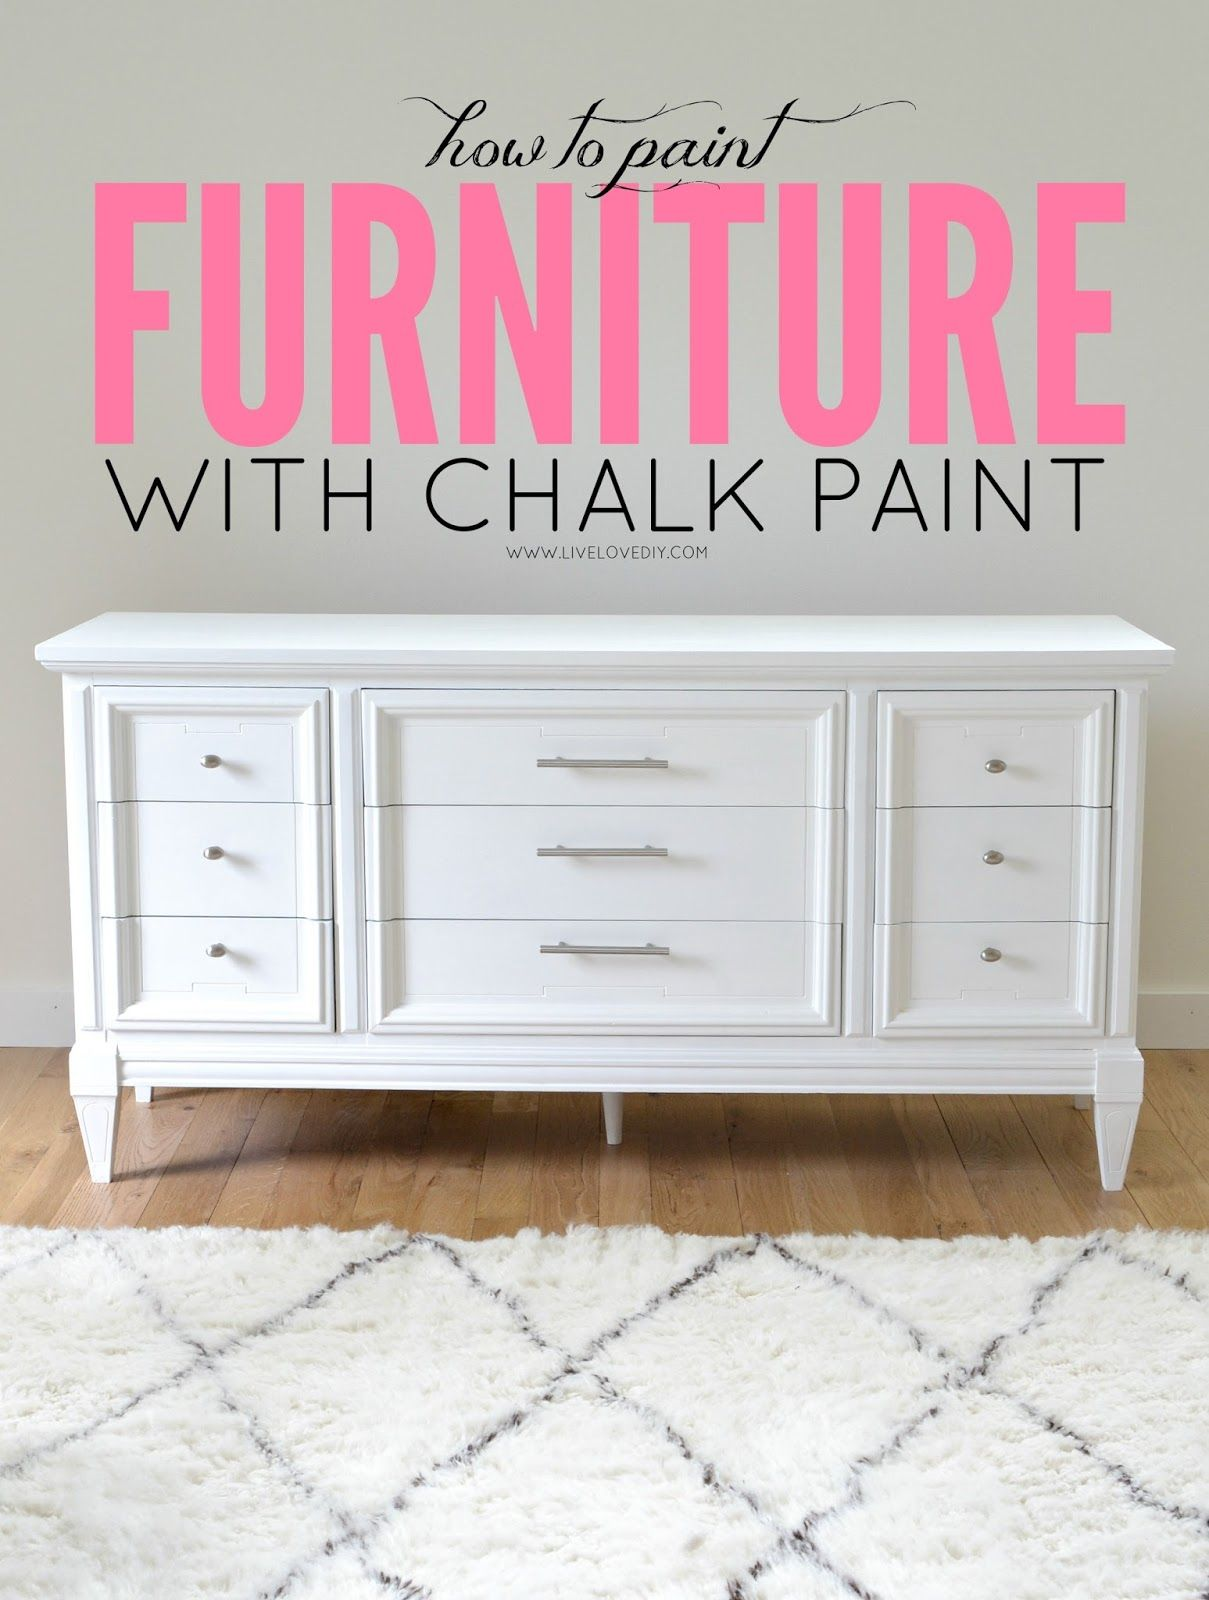 How To Paint Furniture with Chalk Paint  and how to survive a DIY disaster. How To Paint Furniture with Chalk Paint  and how to survive a DIY